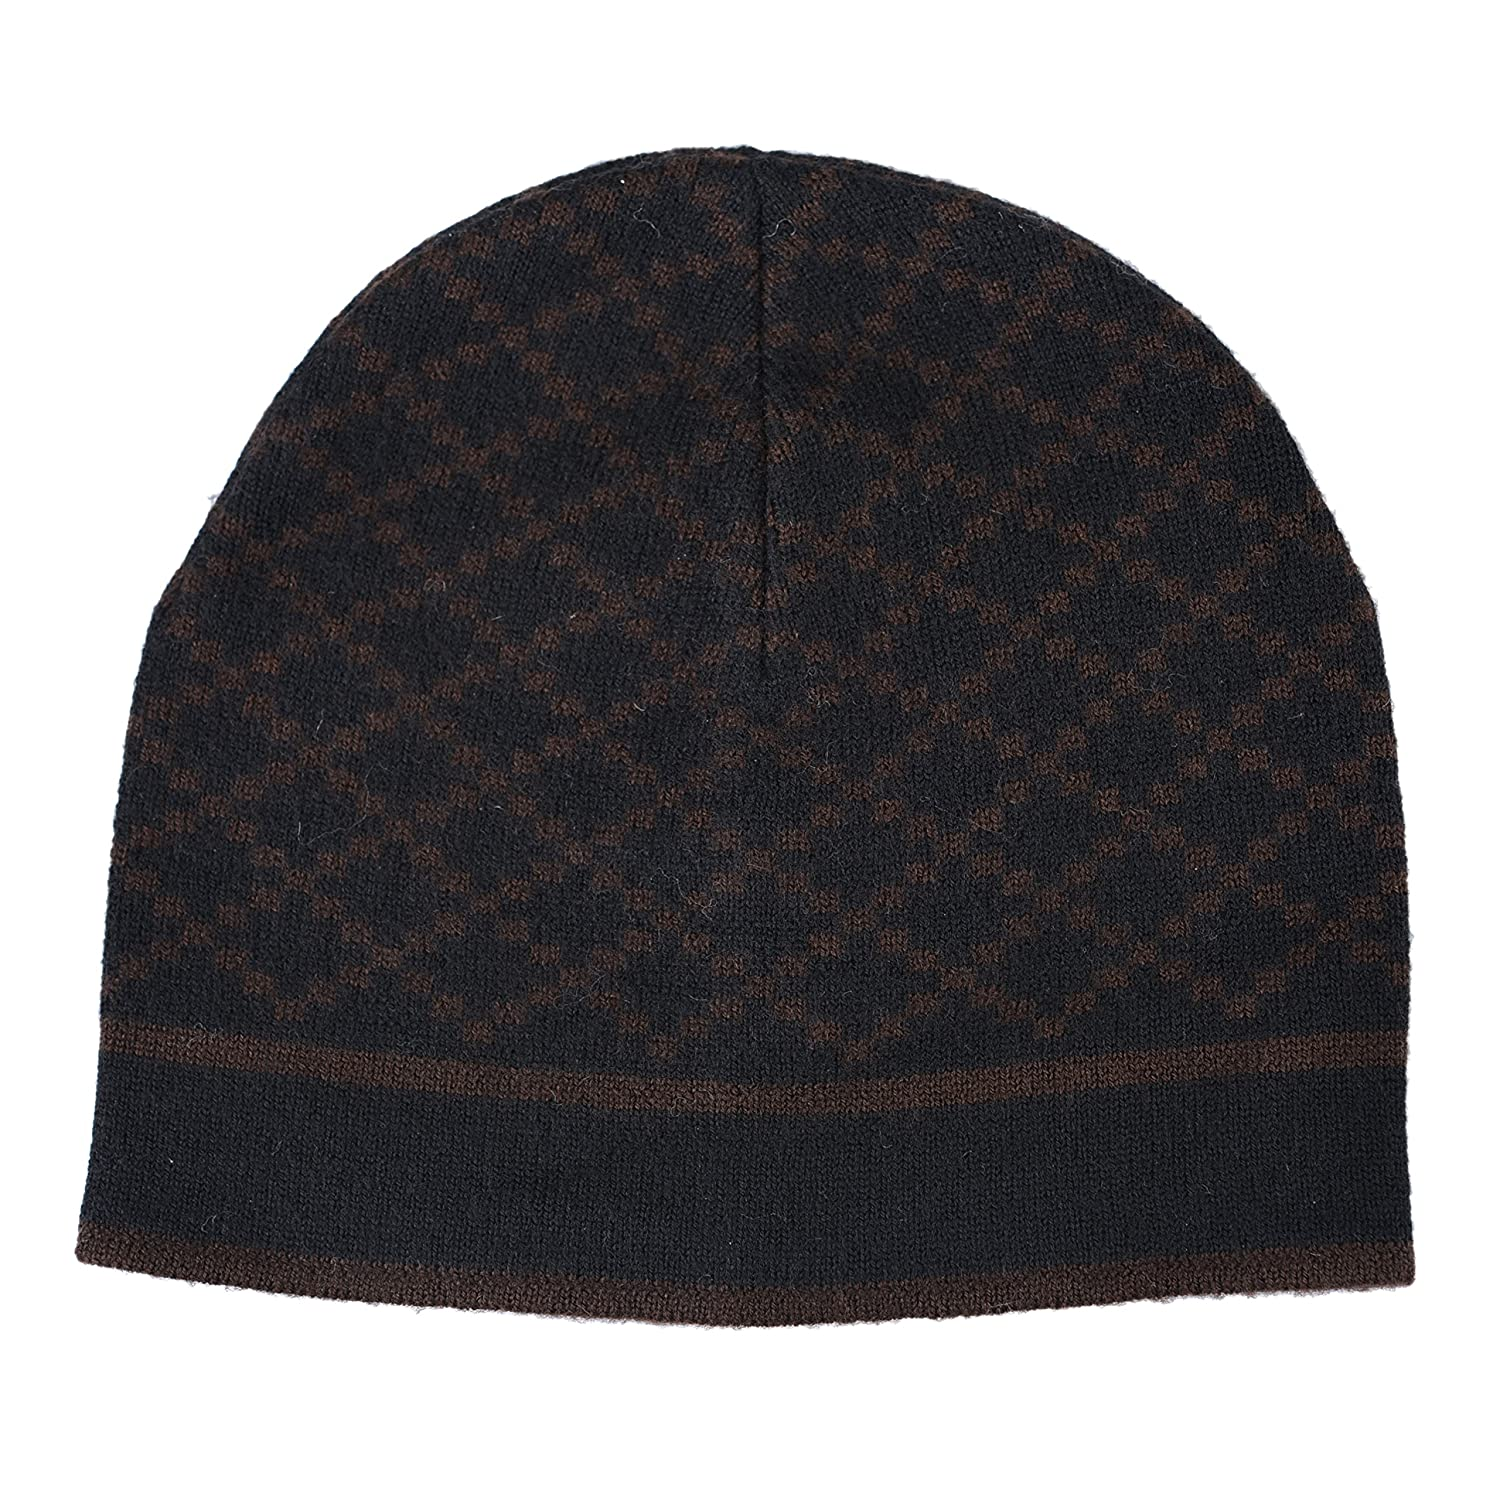 bd6a8a4d2 Amazon.com  Gucci Unisex Multi-Color 100% Wool Beanie Hat One Size  Clothing